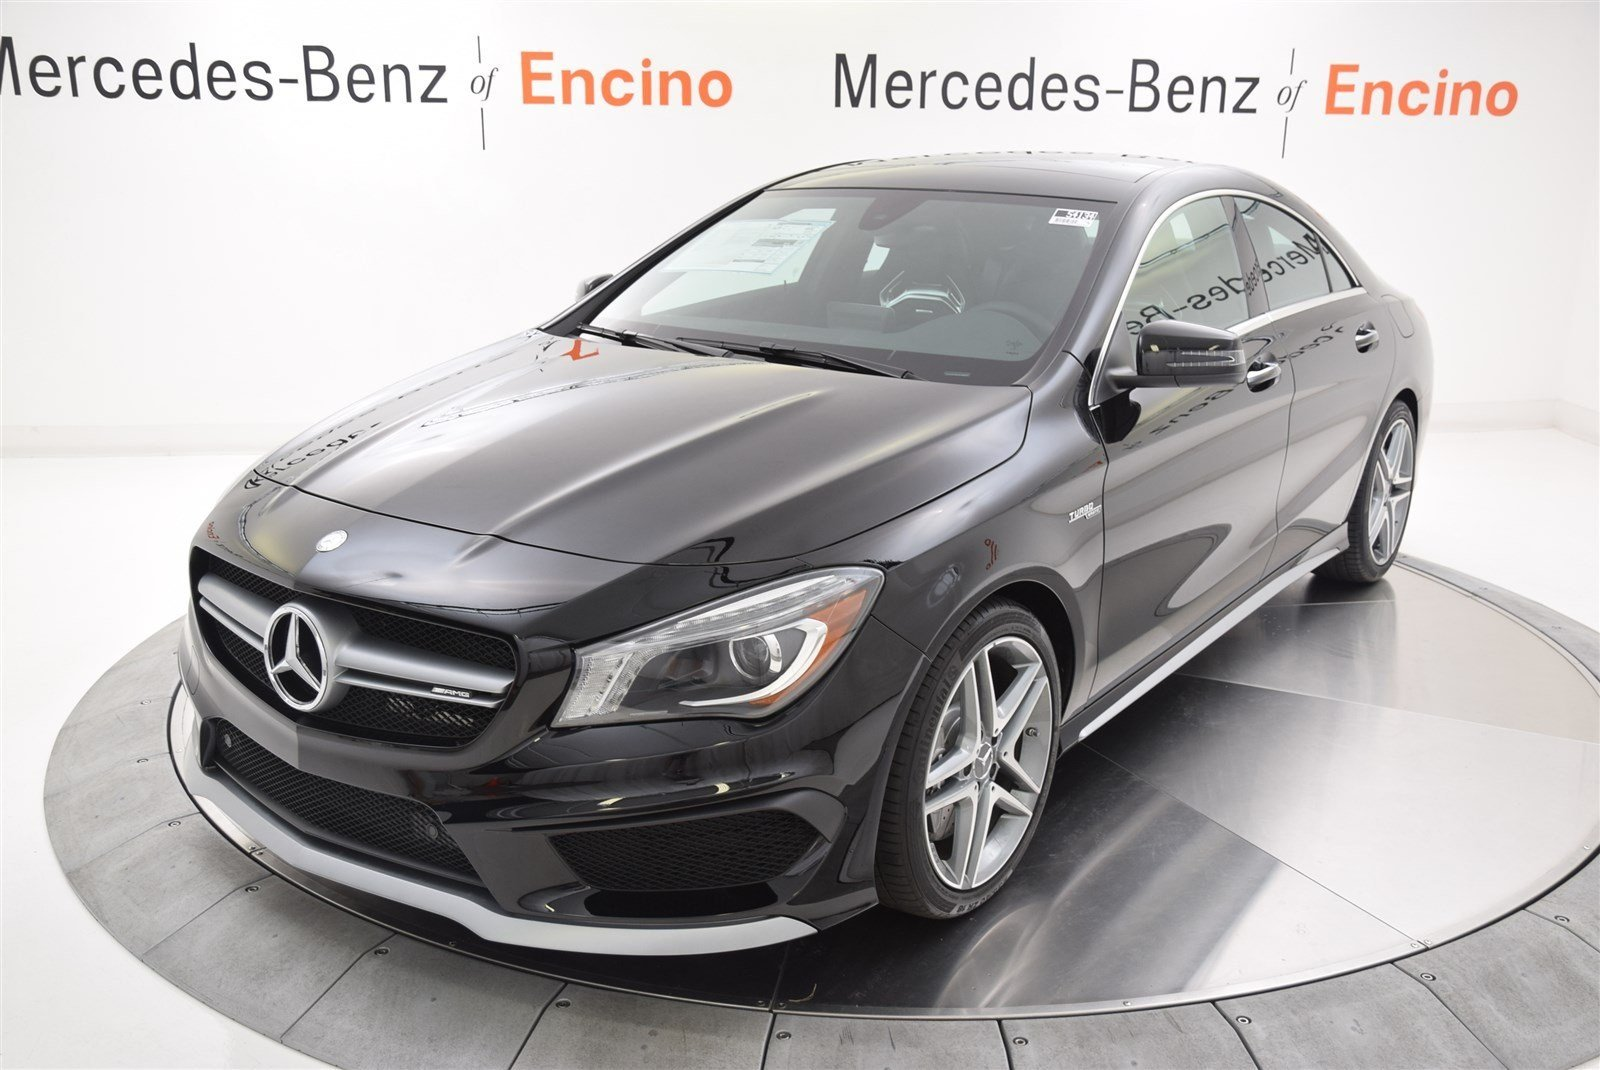 New 2016 Mercedes-Benz CLA AMG® CLA 45 4-Door Coupe AWD 4MATIC®